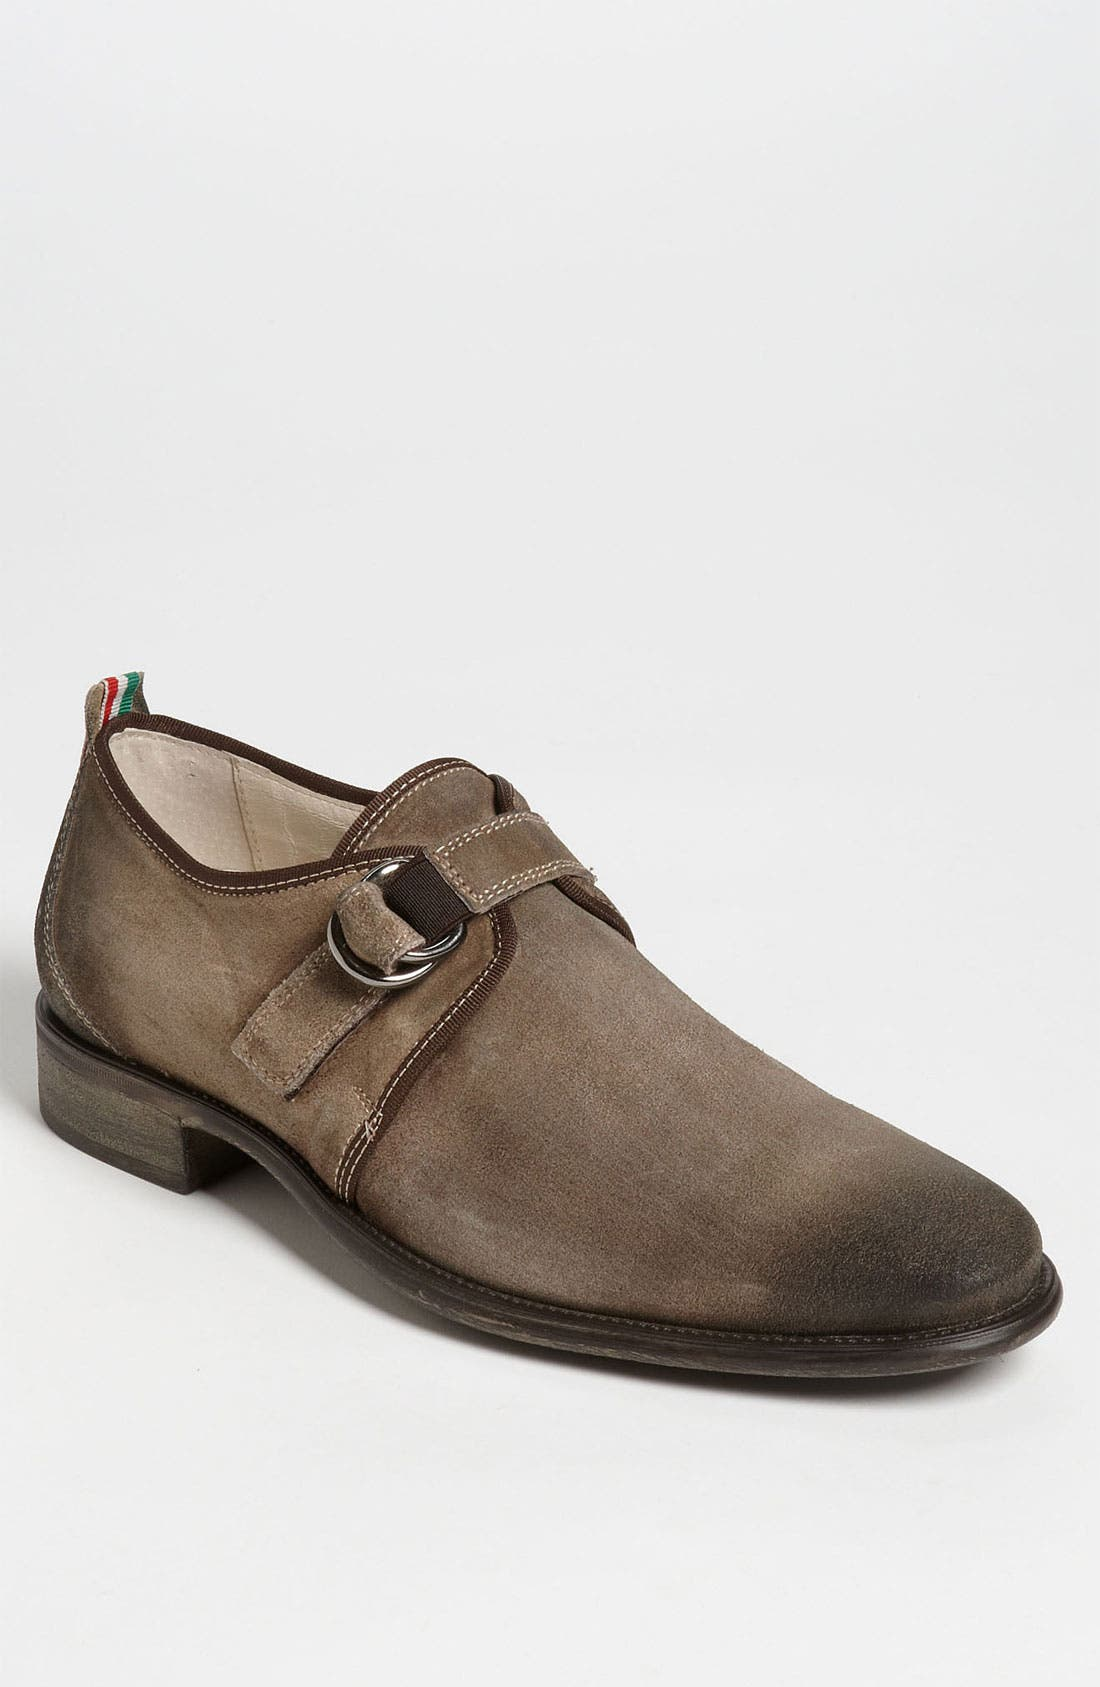 Alternate Image 1 Selected - Bacco Bucci 'Brennan' Monk Strap Slip-On